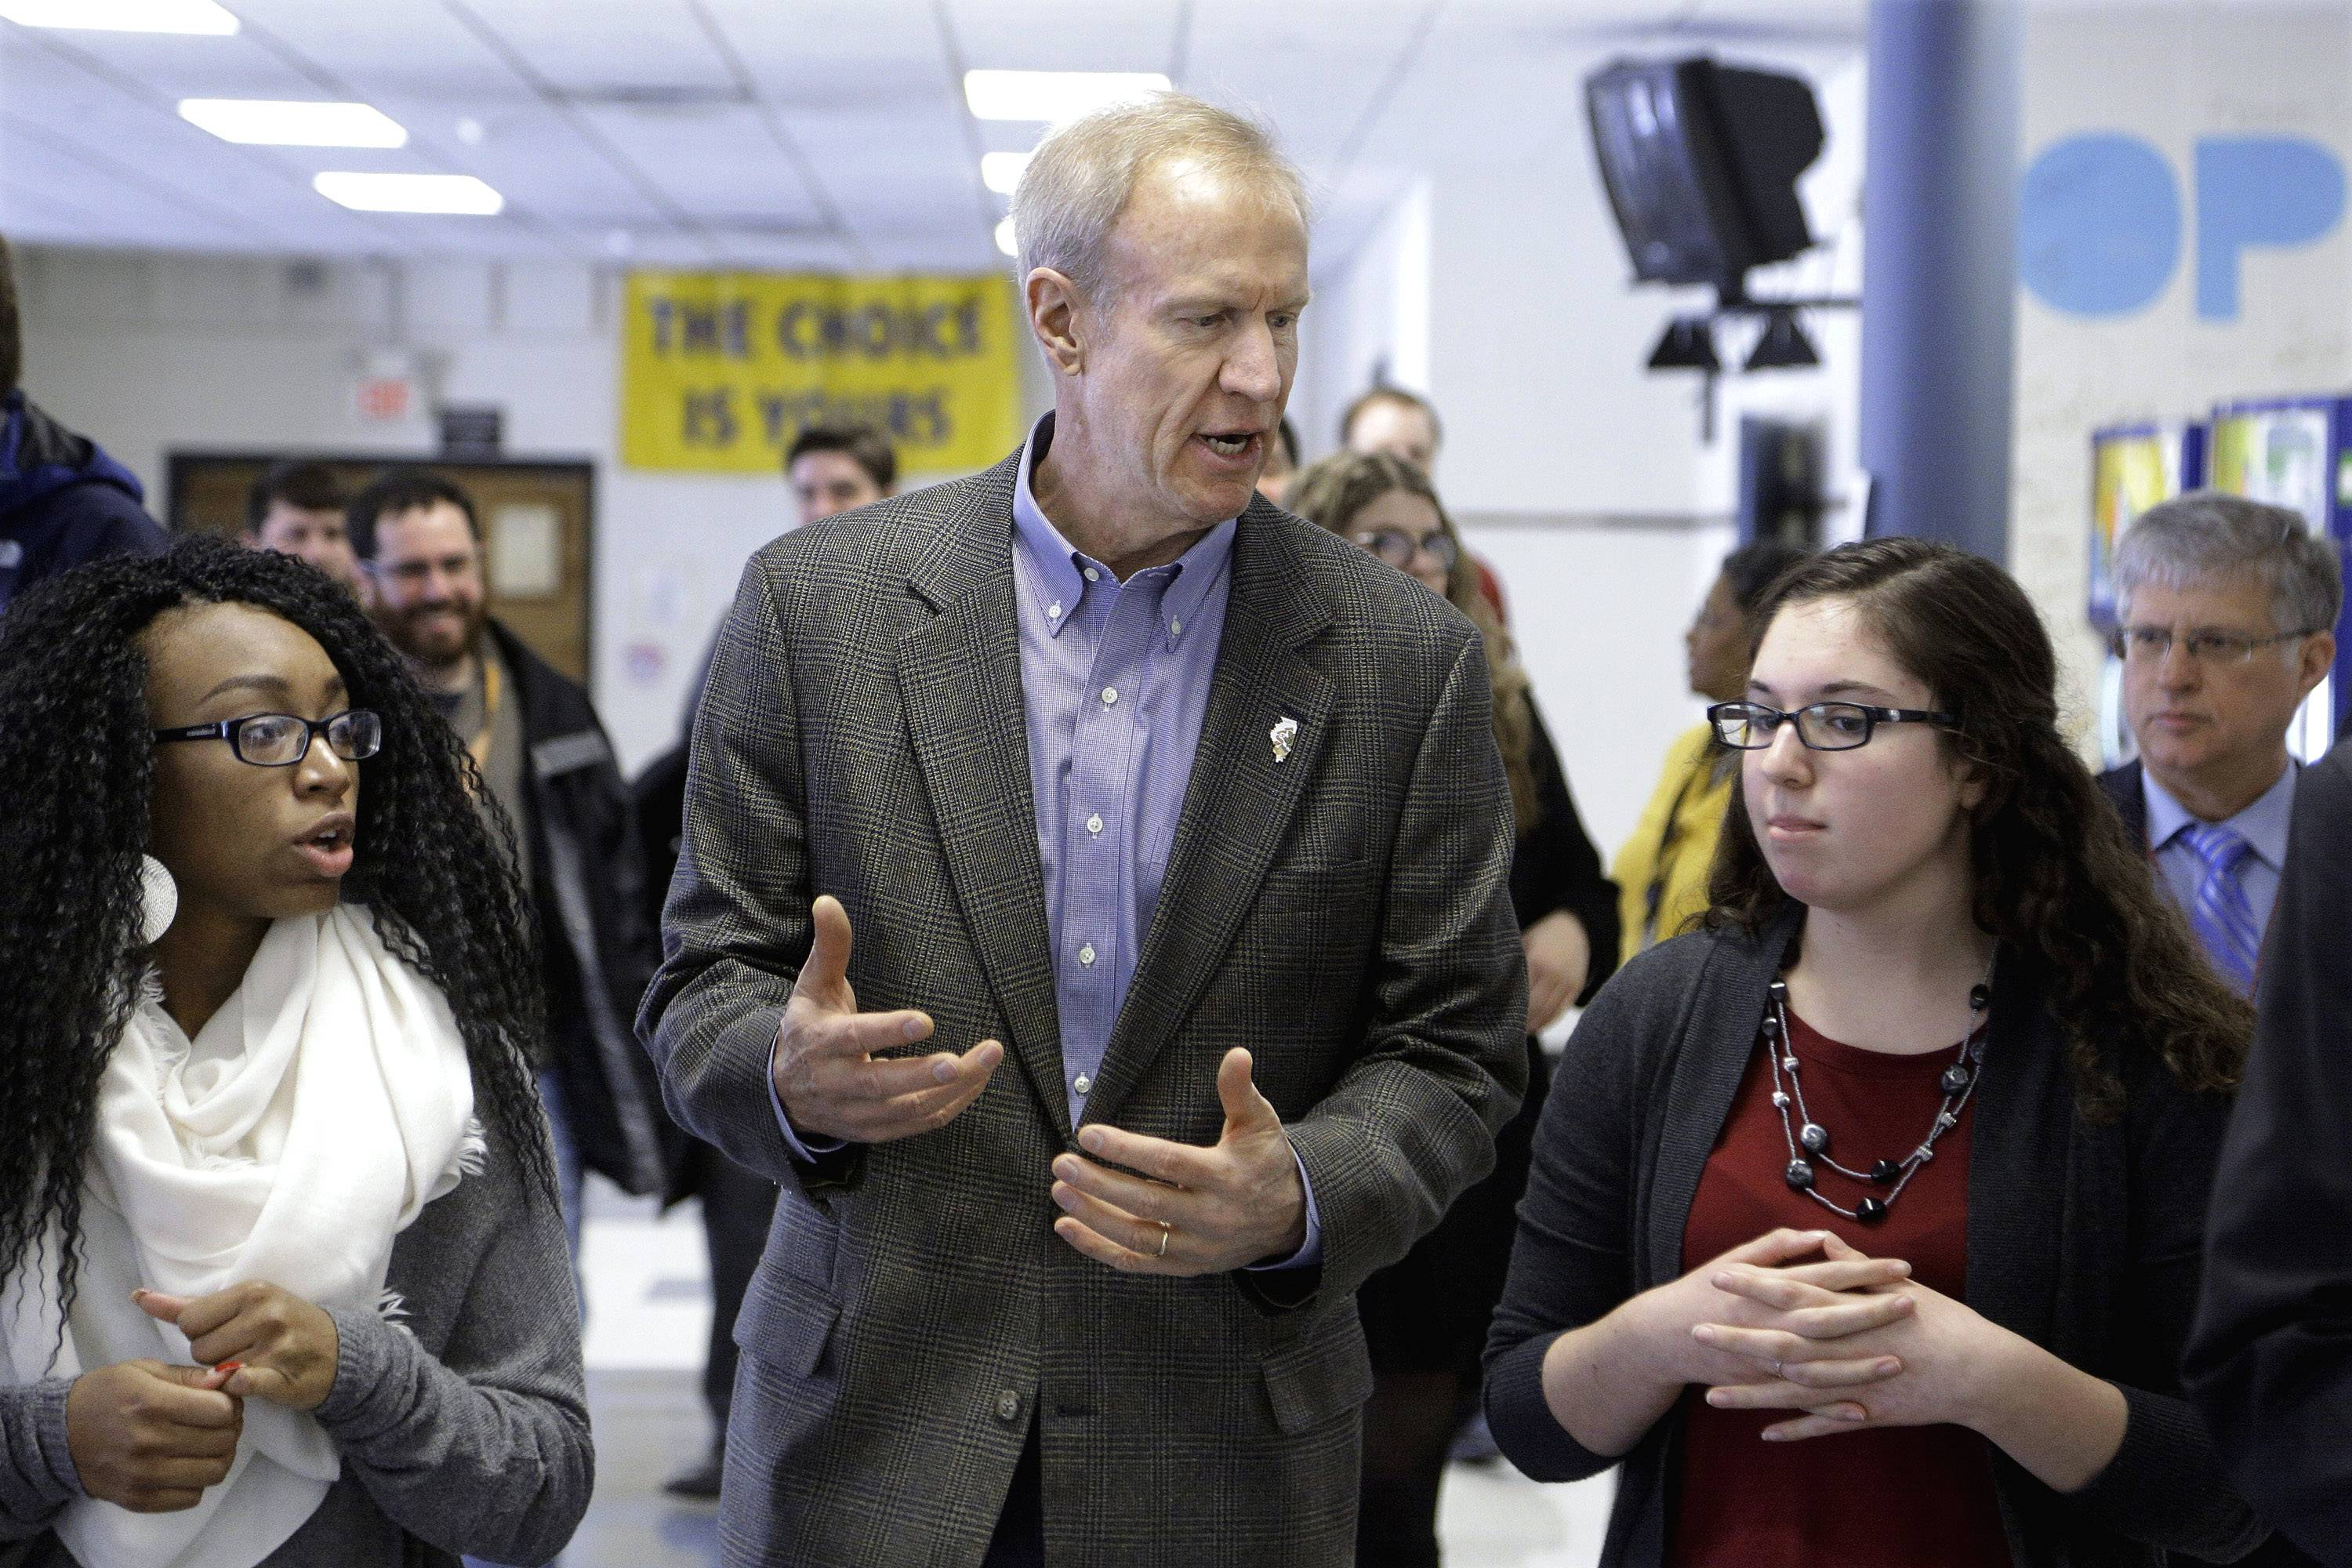 Rauner to release education budget details Tuesday